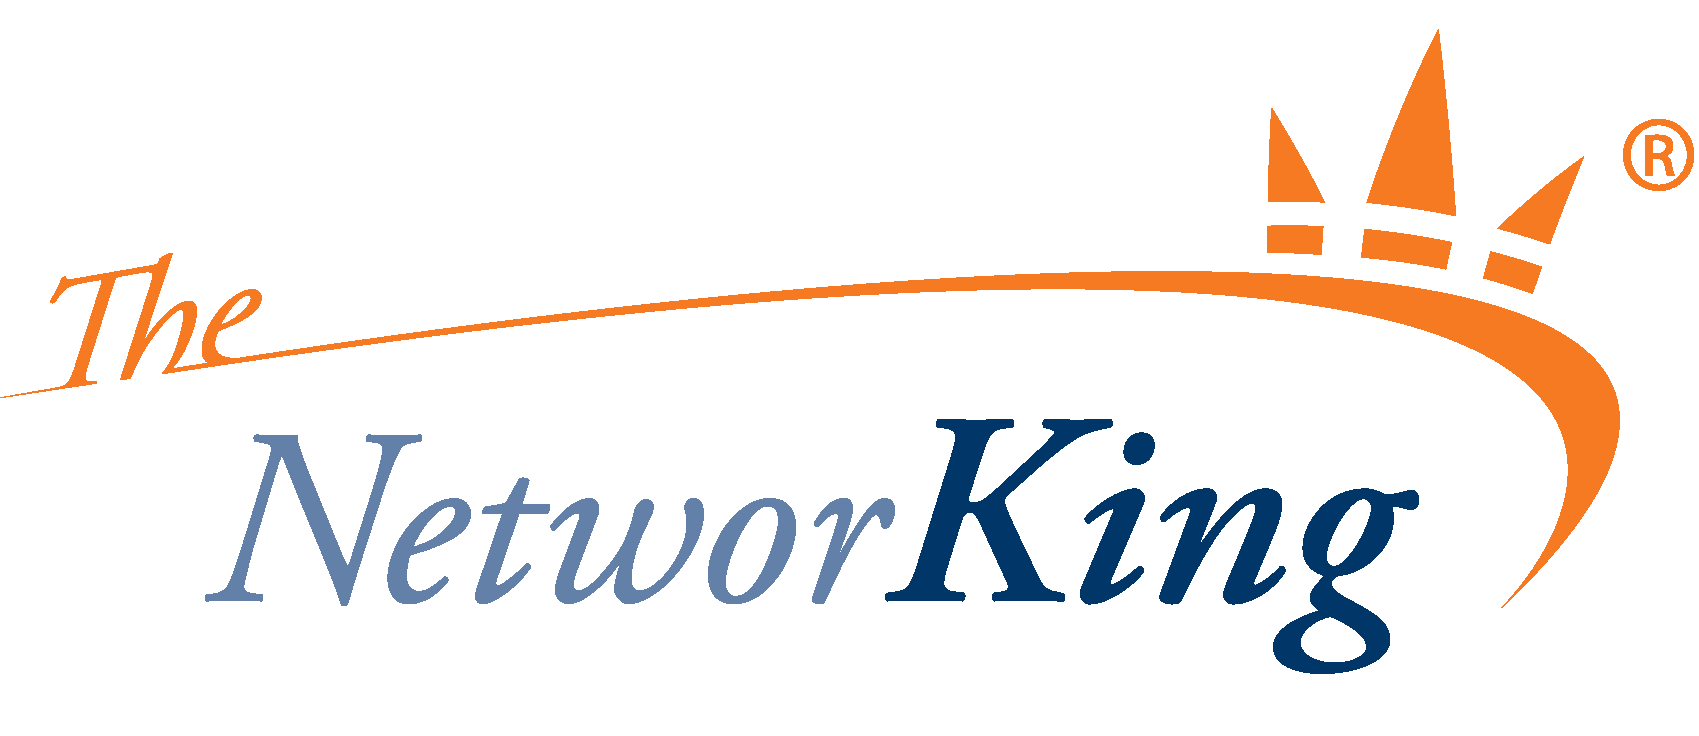 Logo The Network King